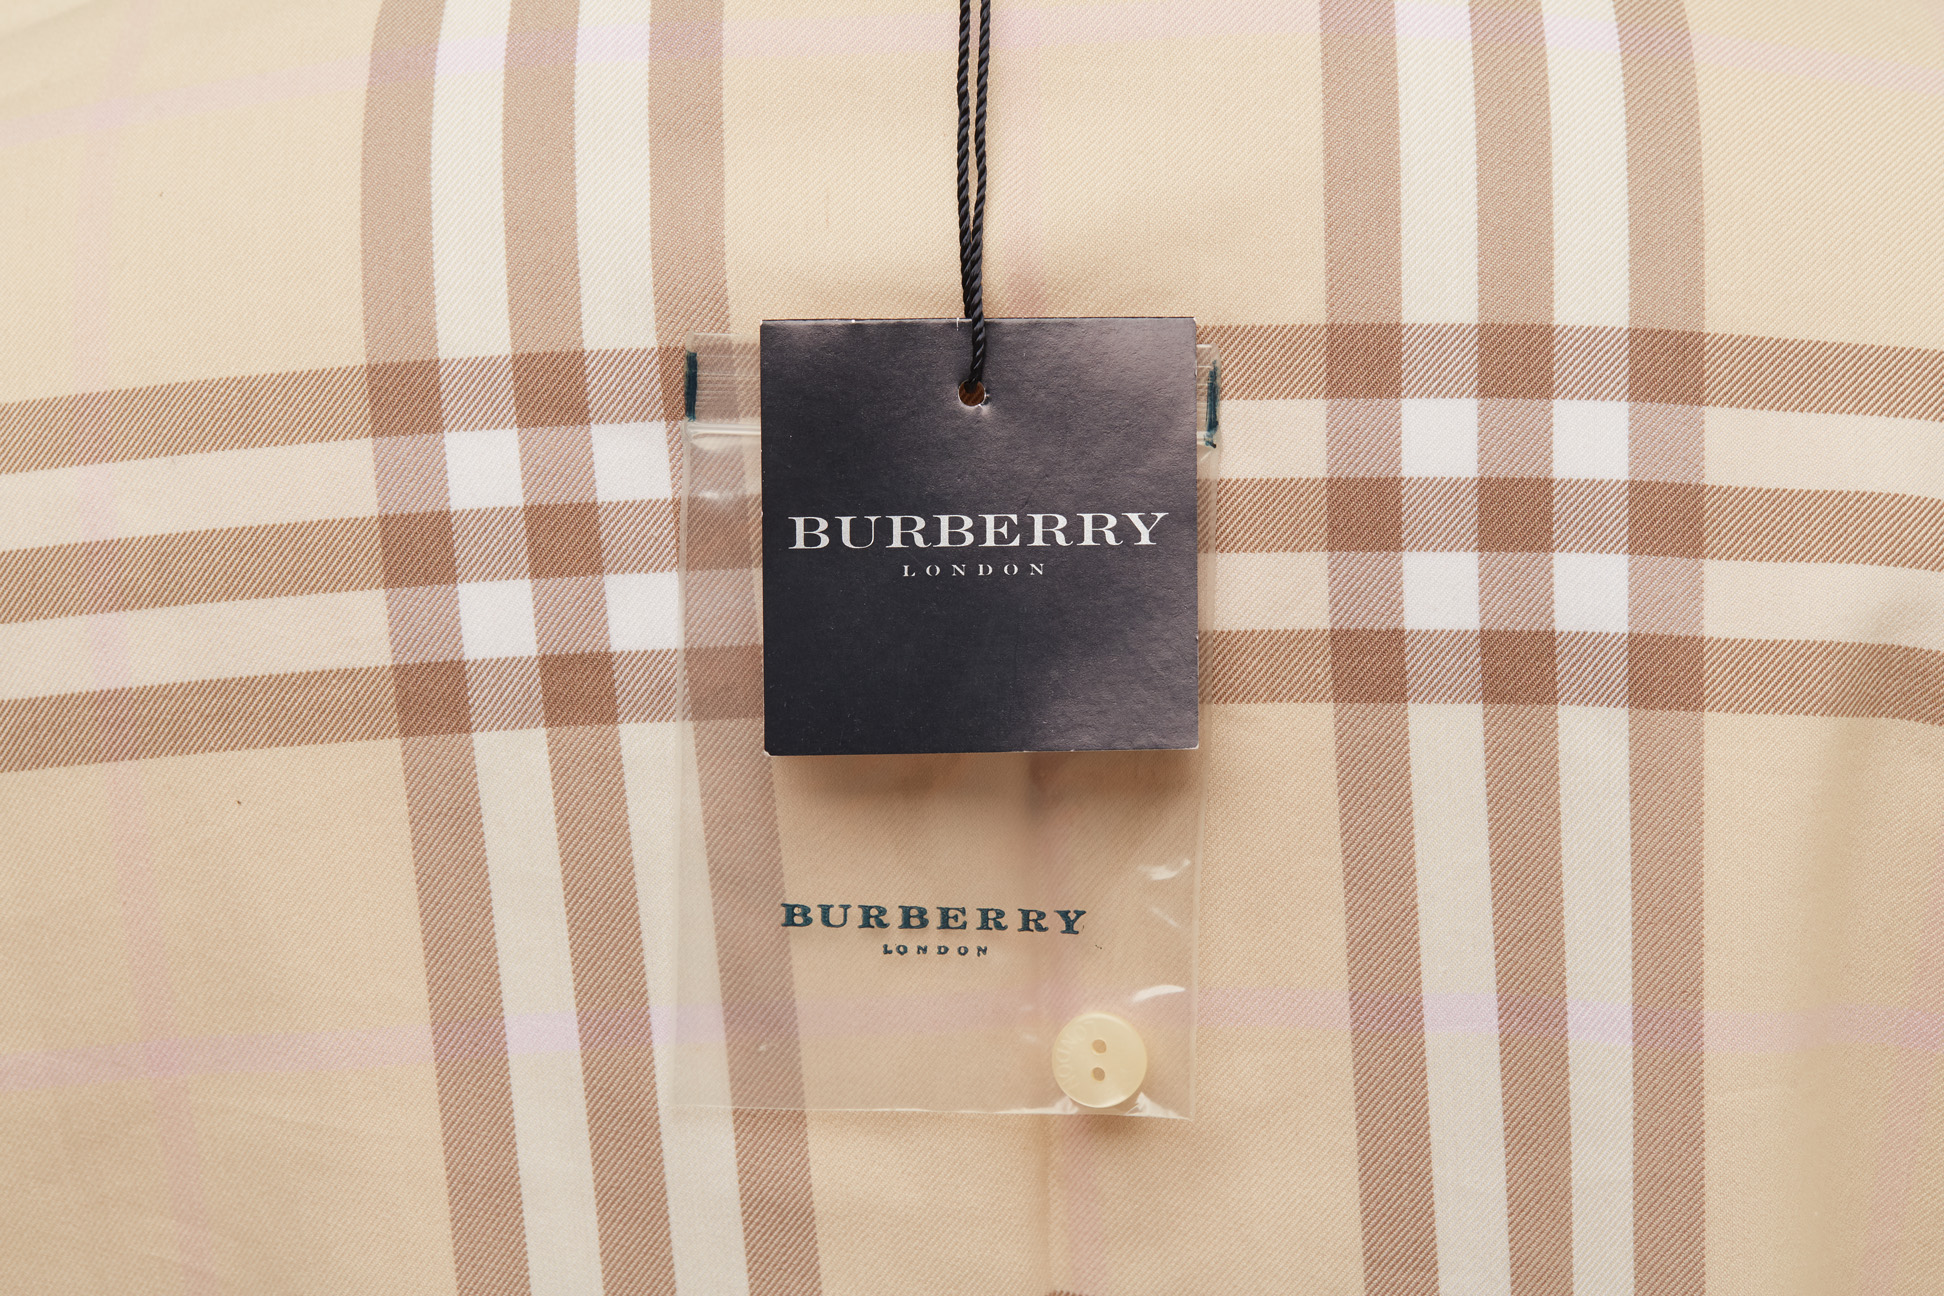 A BURBERRY BEIGE CHECK BUTTON-UP SHIRT - Image 3 of 3